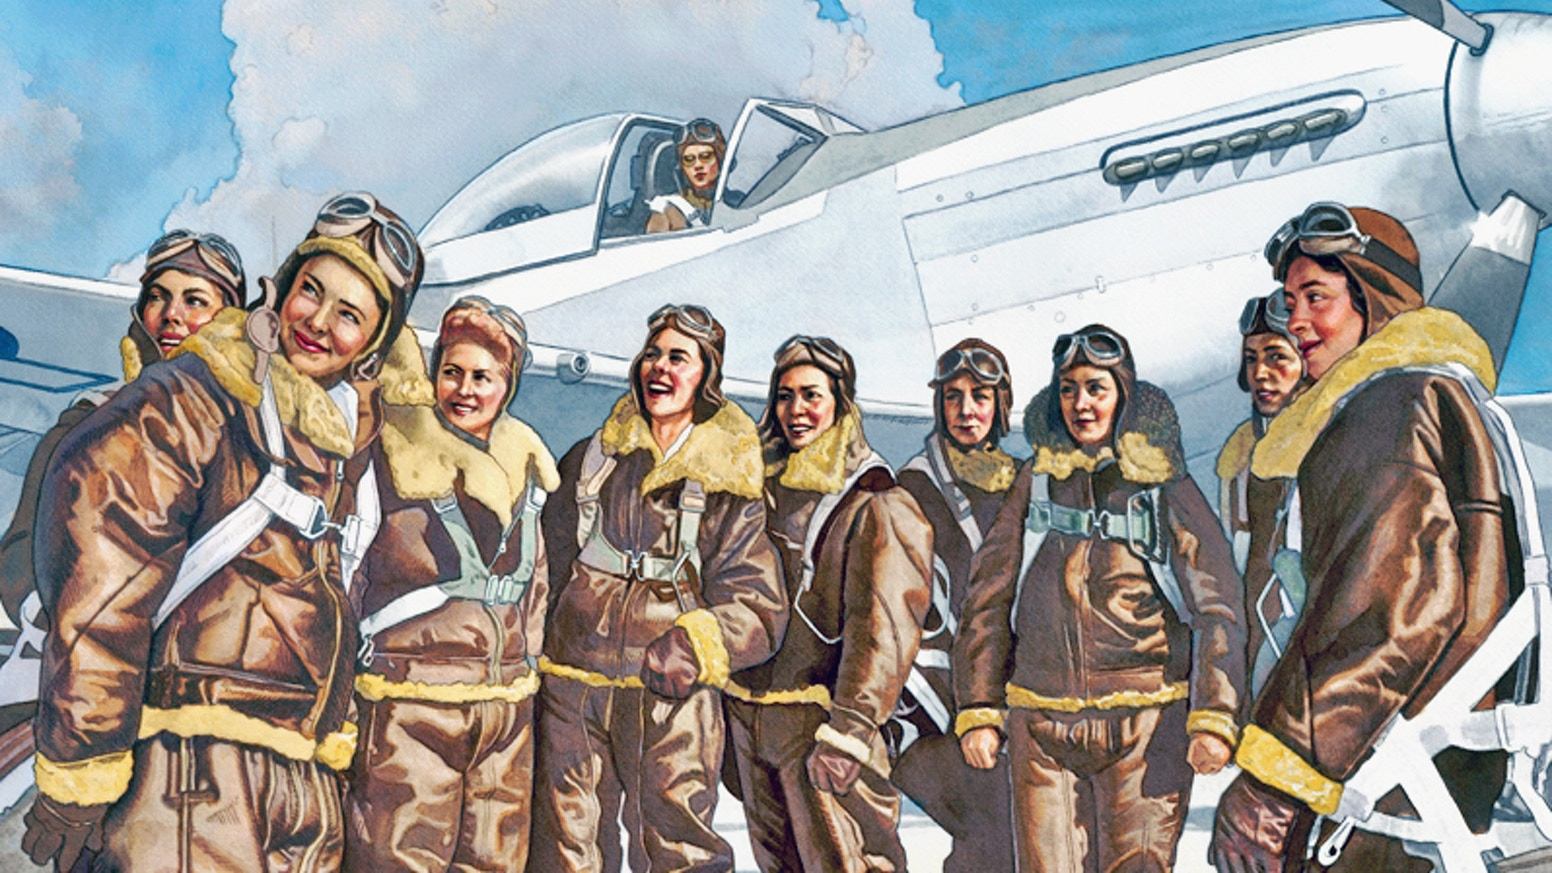 Help us inspire young people with the story of America's first female military pilots.